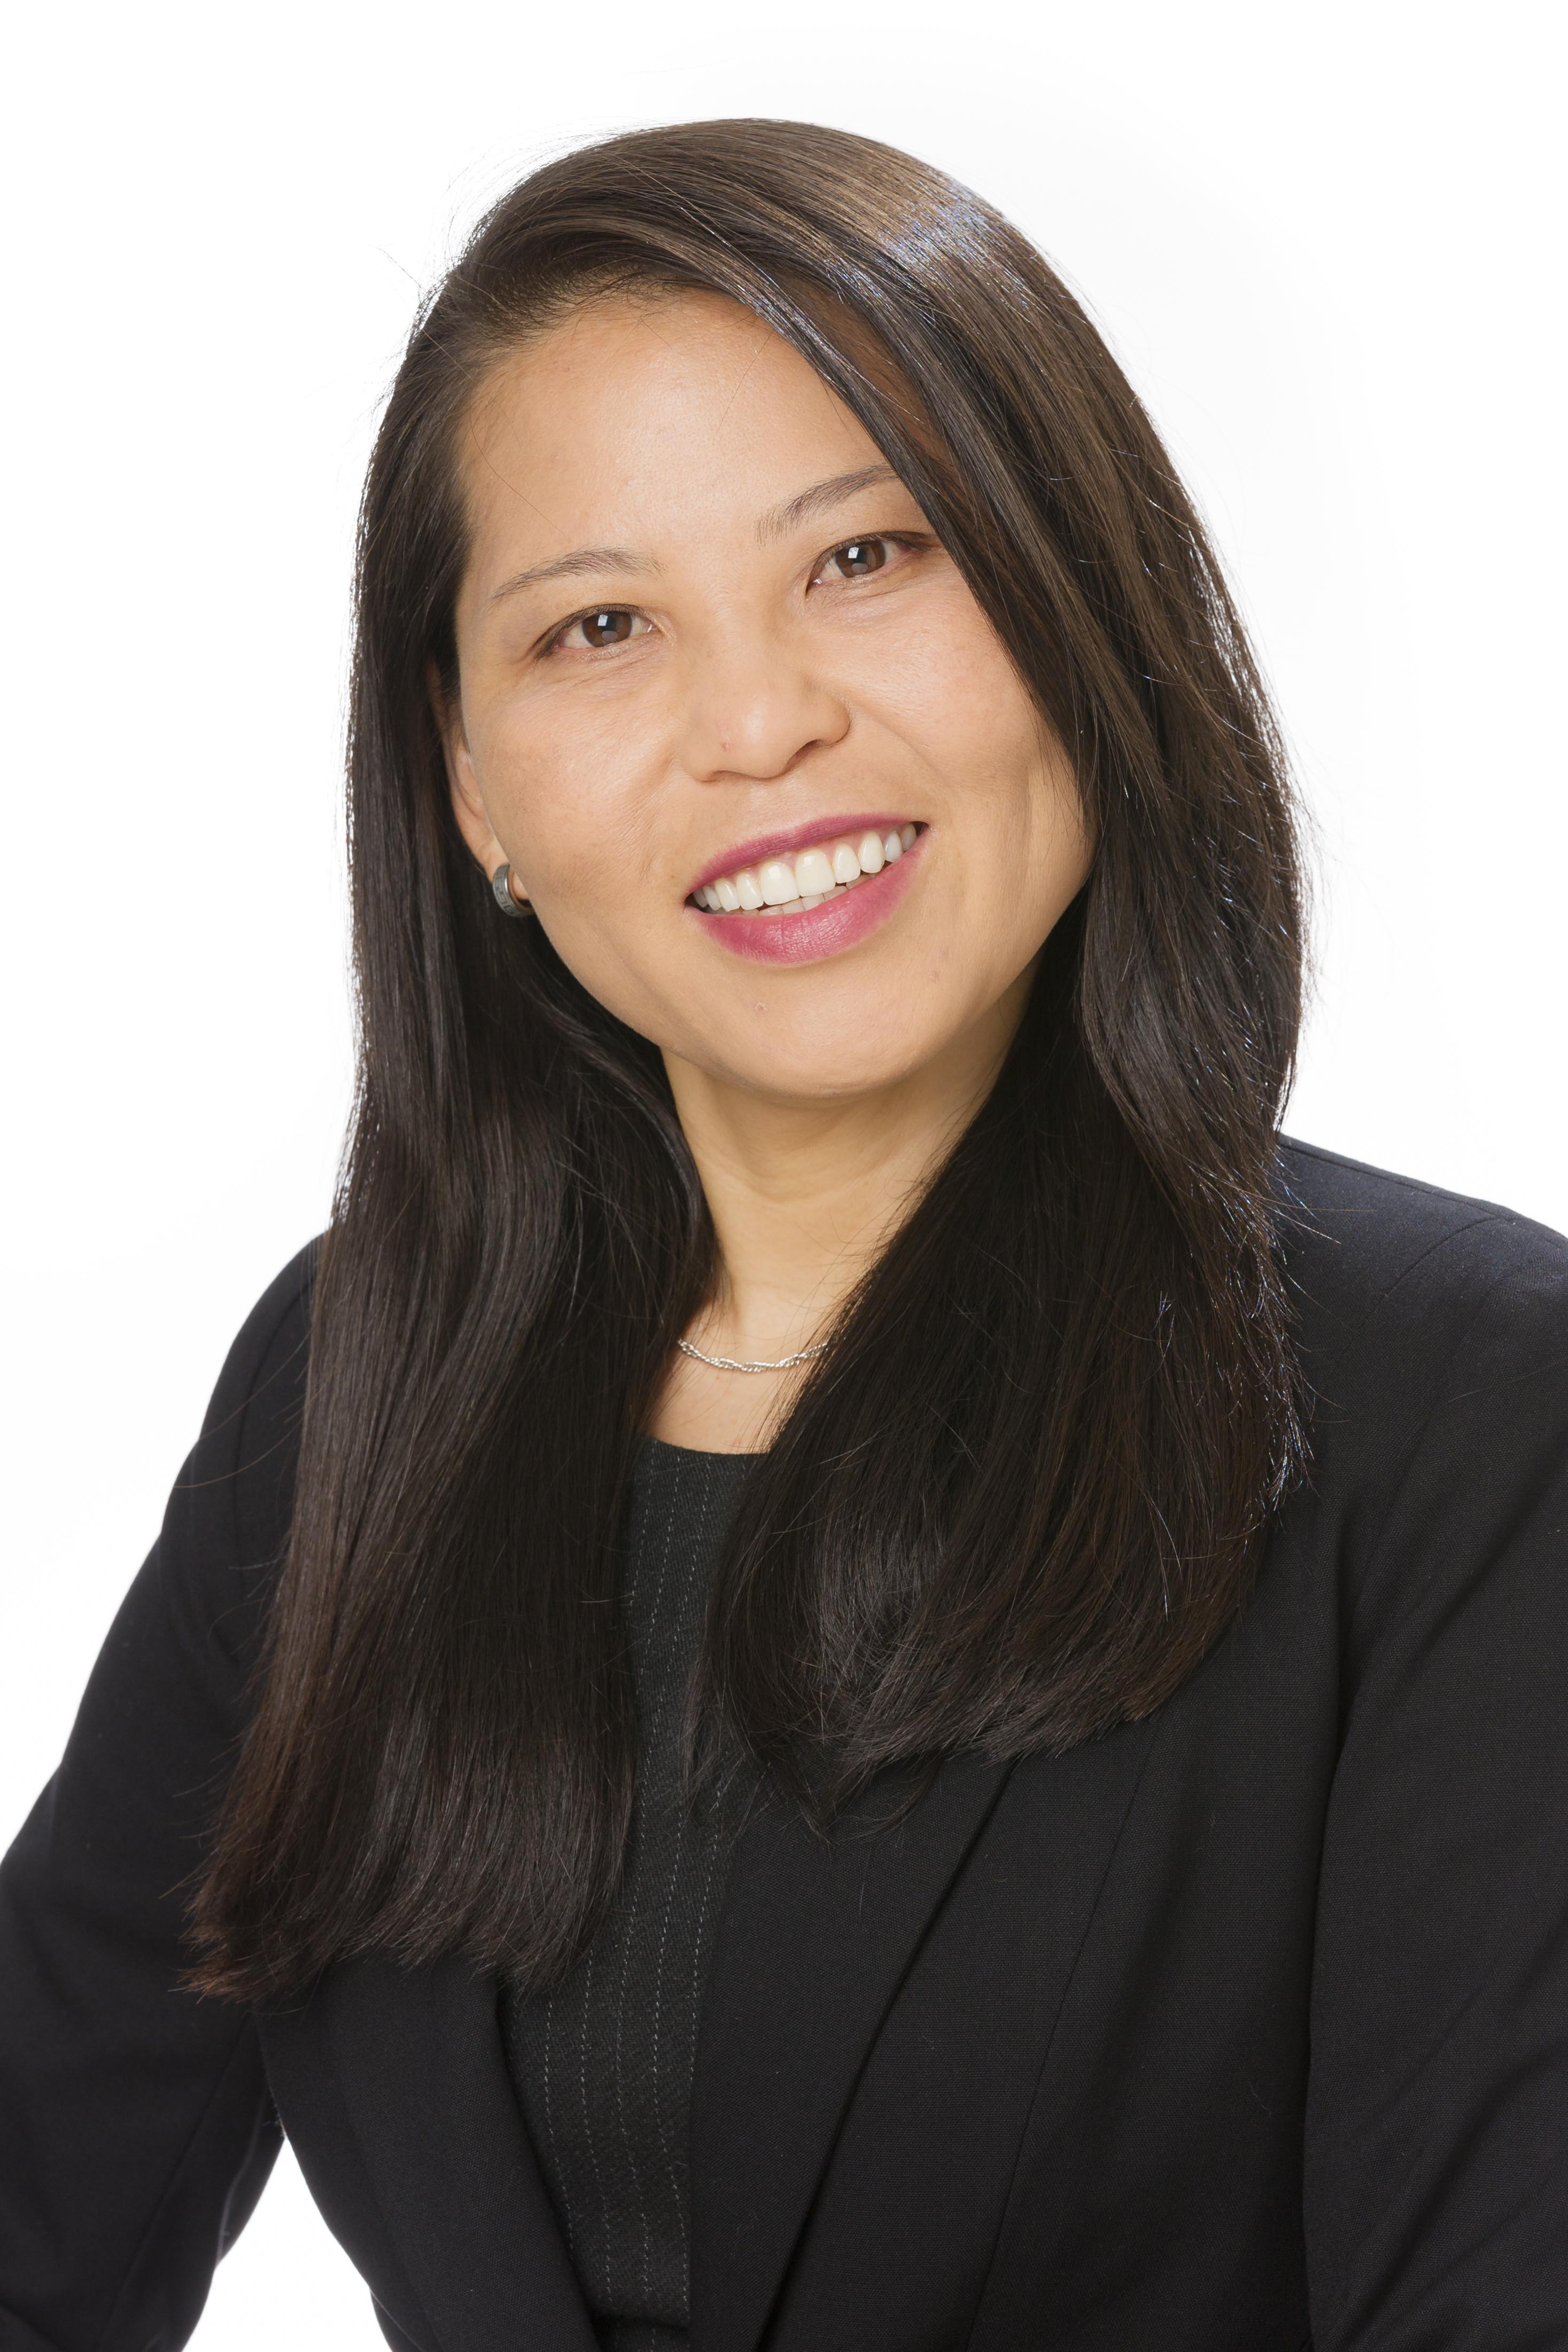 JACQUELINE TEO, Chief Digital Officer, HGC